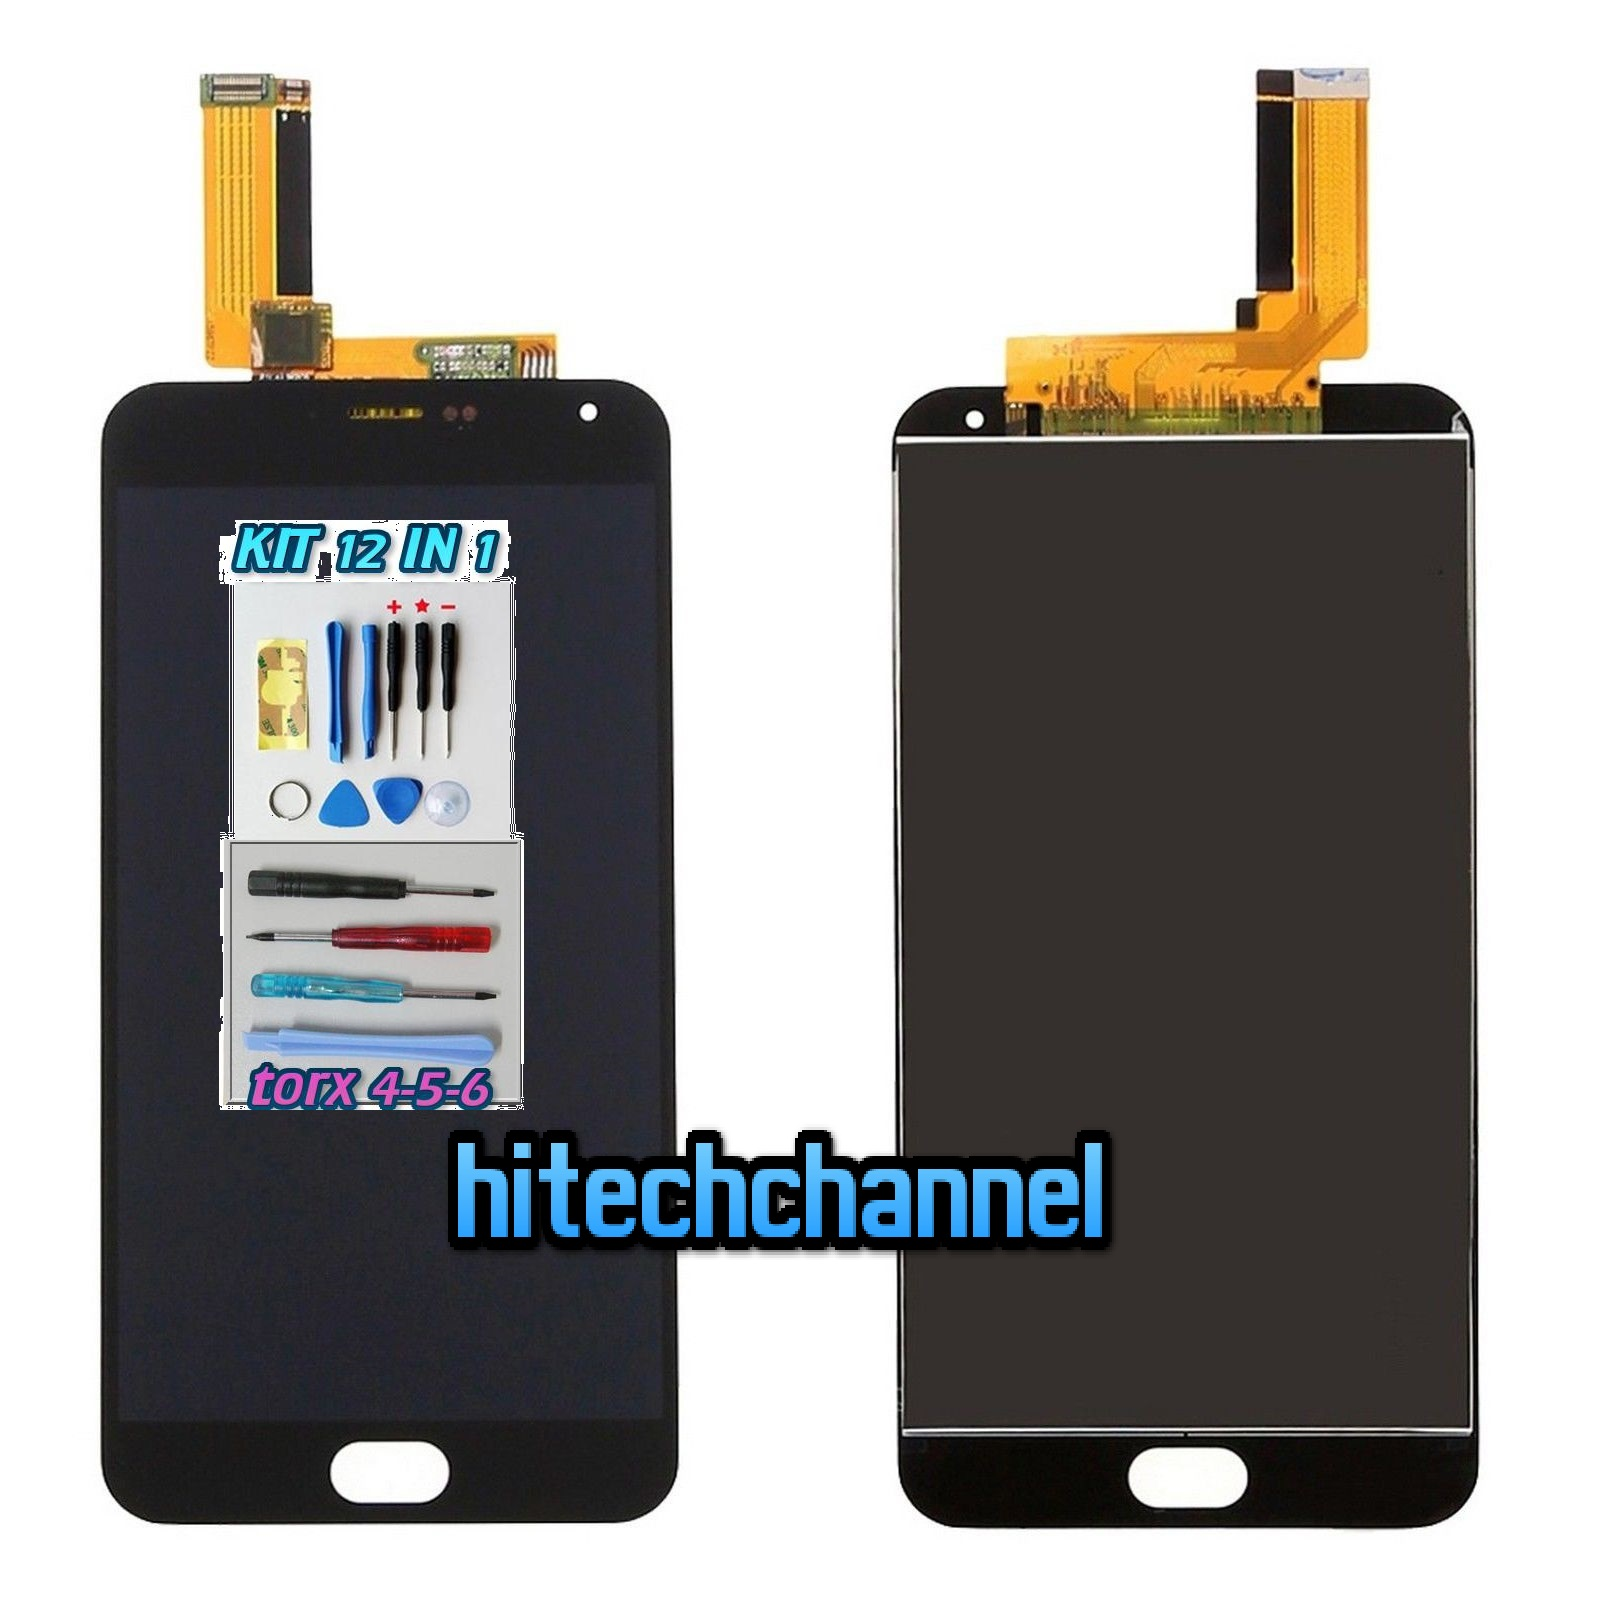 TOUCH SCREEN LCD DISPLAY MEIZU M2 NOTE NERO kit 9 in 1 biadesivo